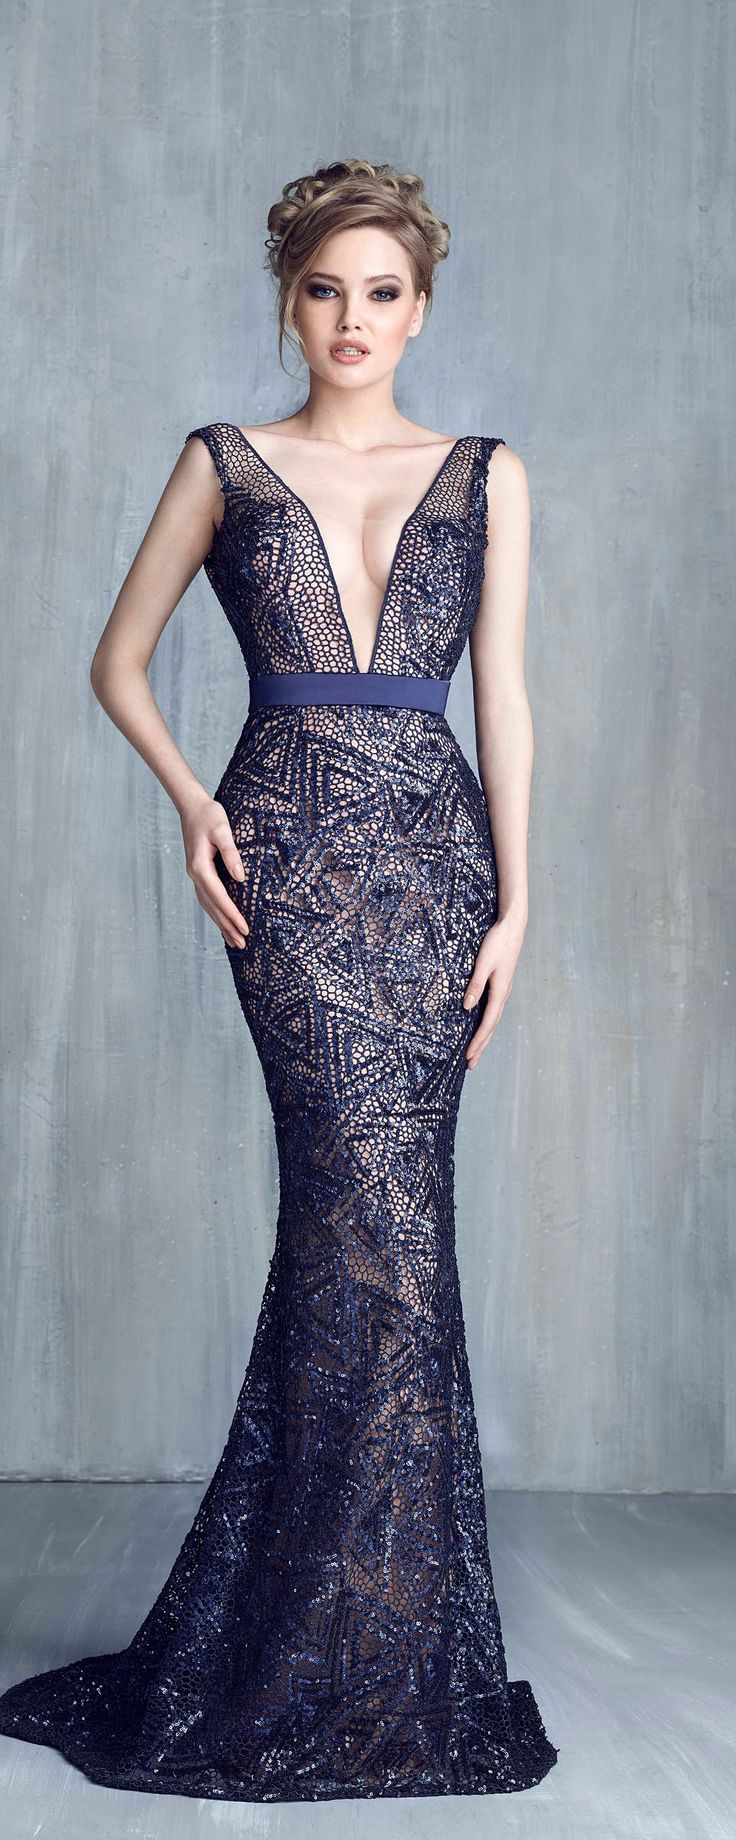 30 best Dress images on Pinterest | High fashion, Homecoming dresses ...